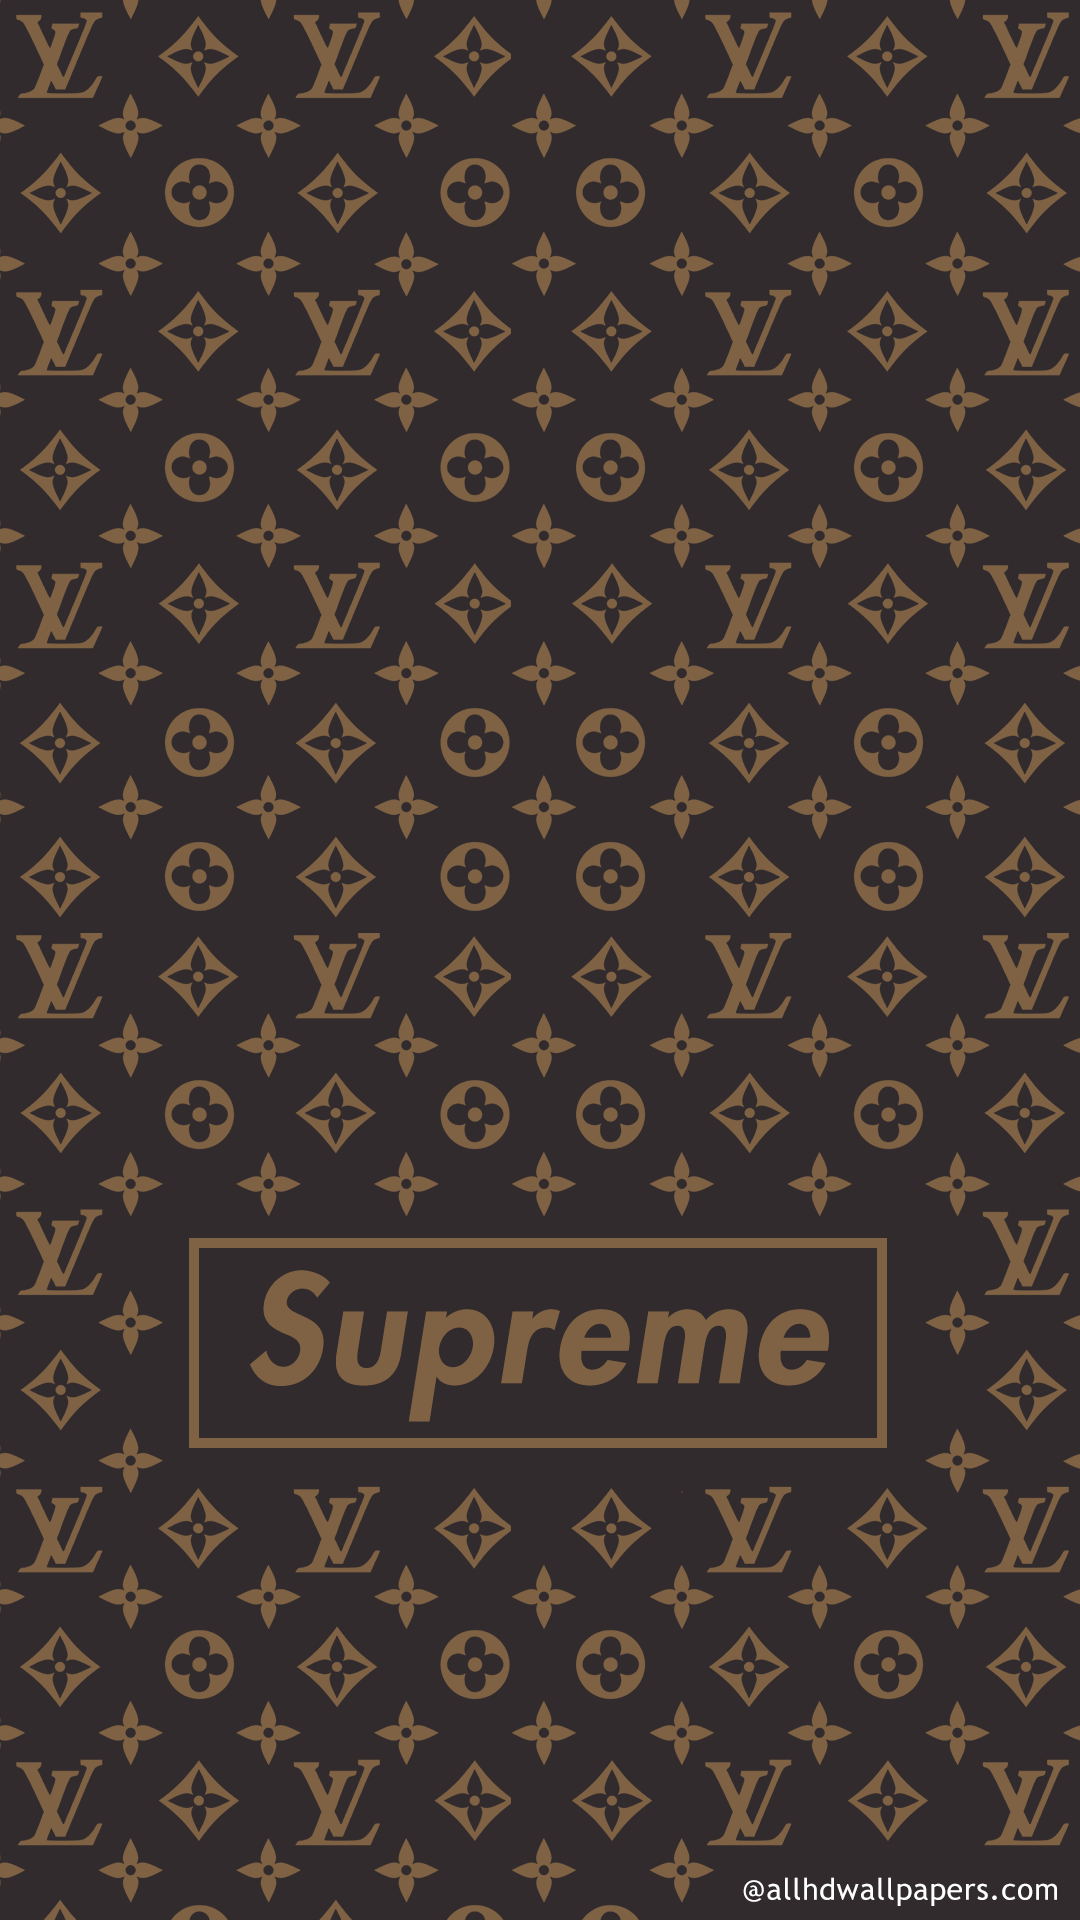 70 Supreme Wallpapers In 4k Allhdwallpapers Supreme Iphone Wallpaper Supreme Wallpaper Supreme Wallpaper Iphone 6